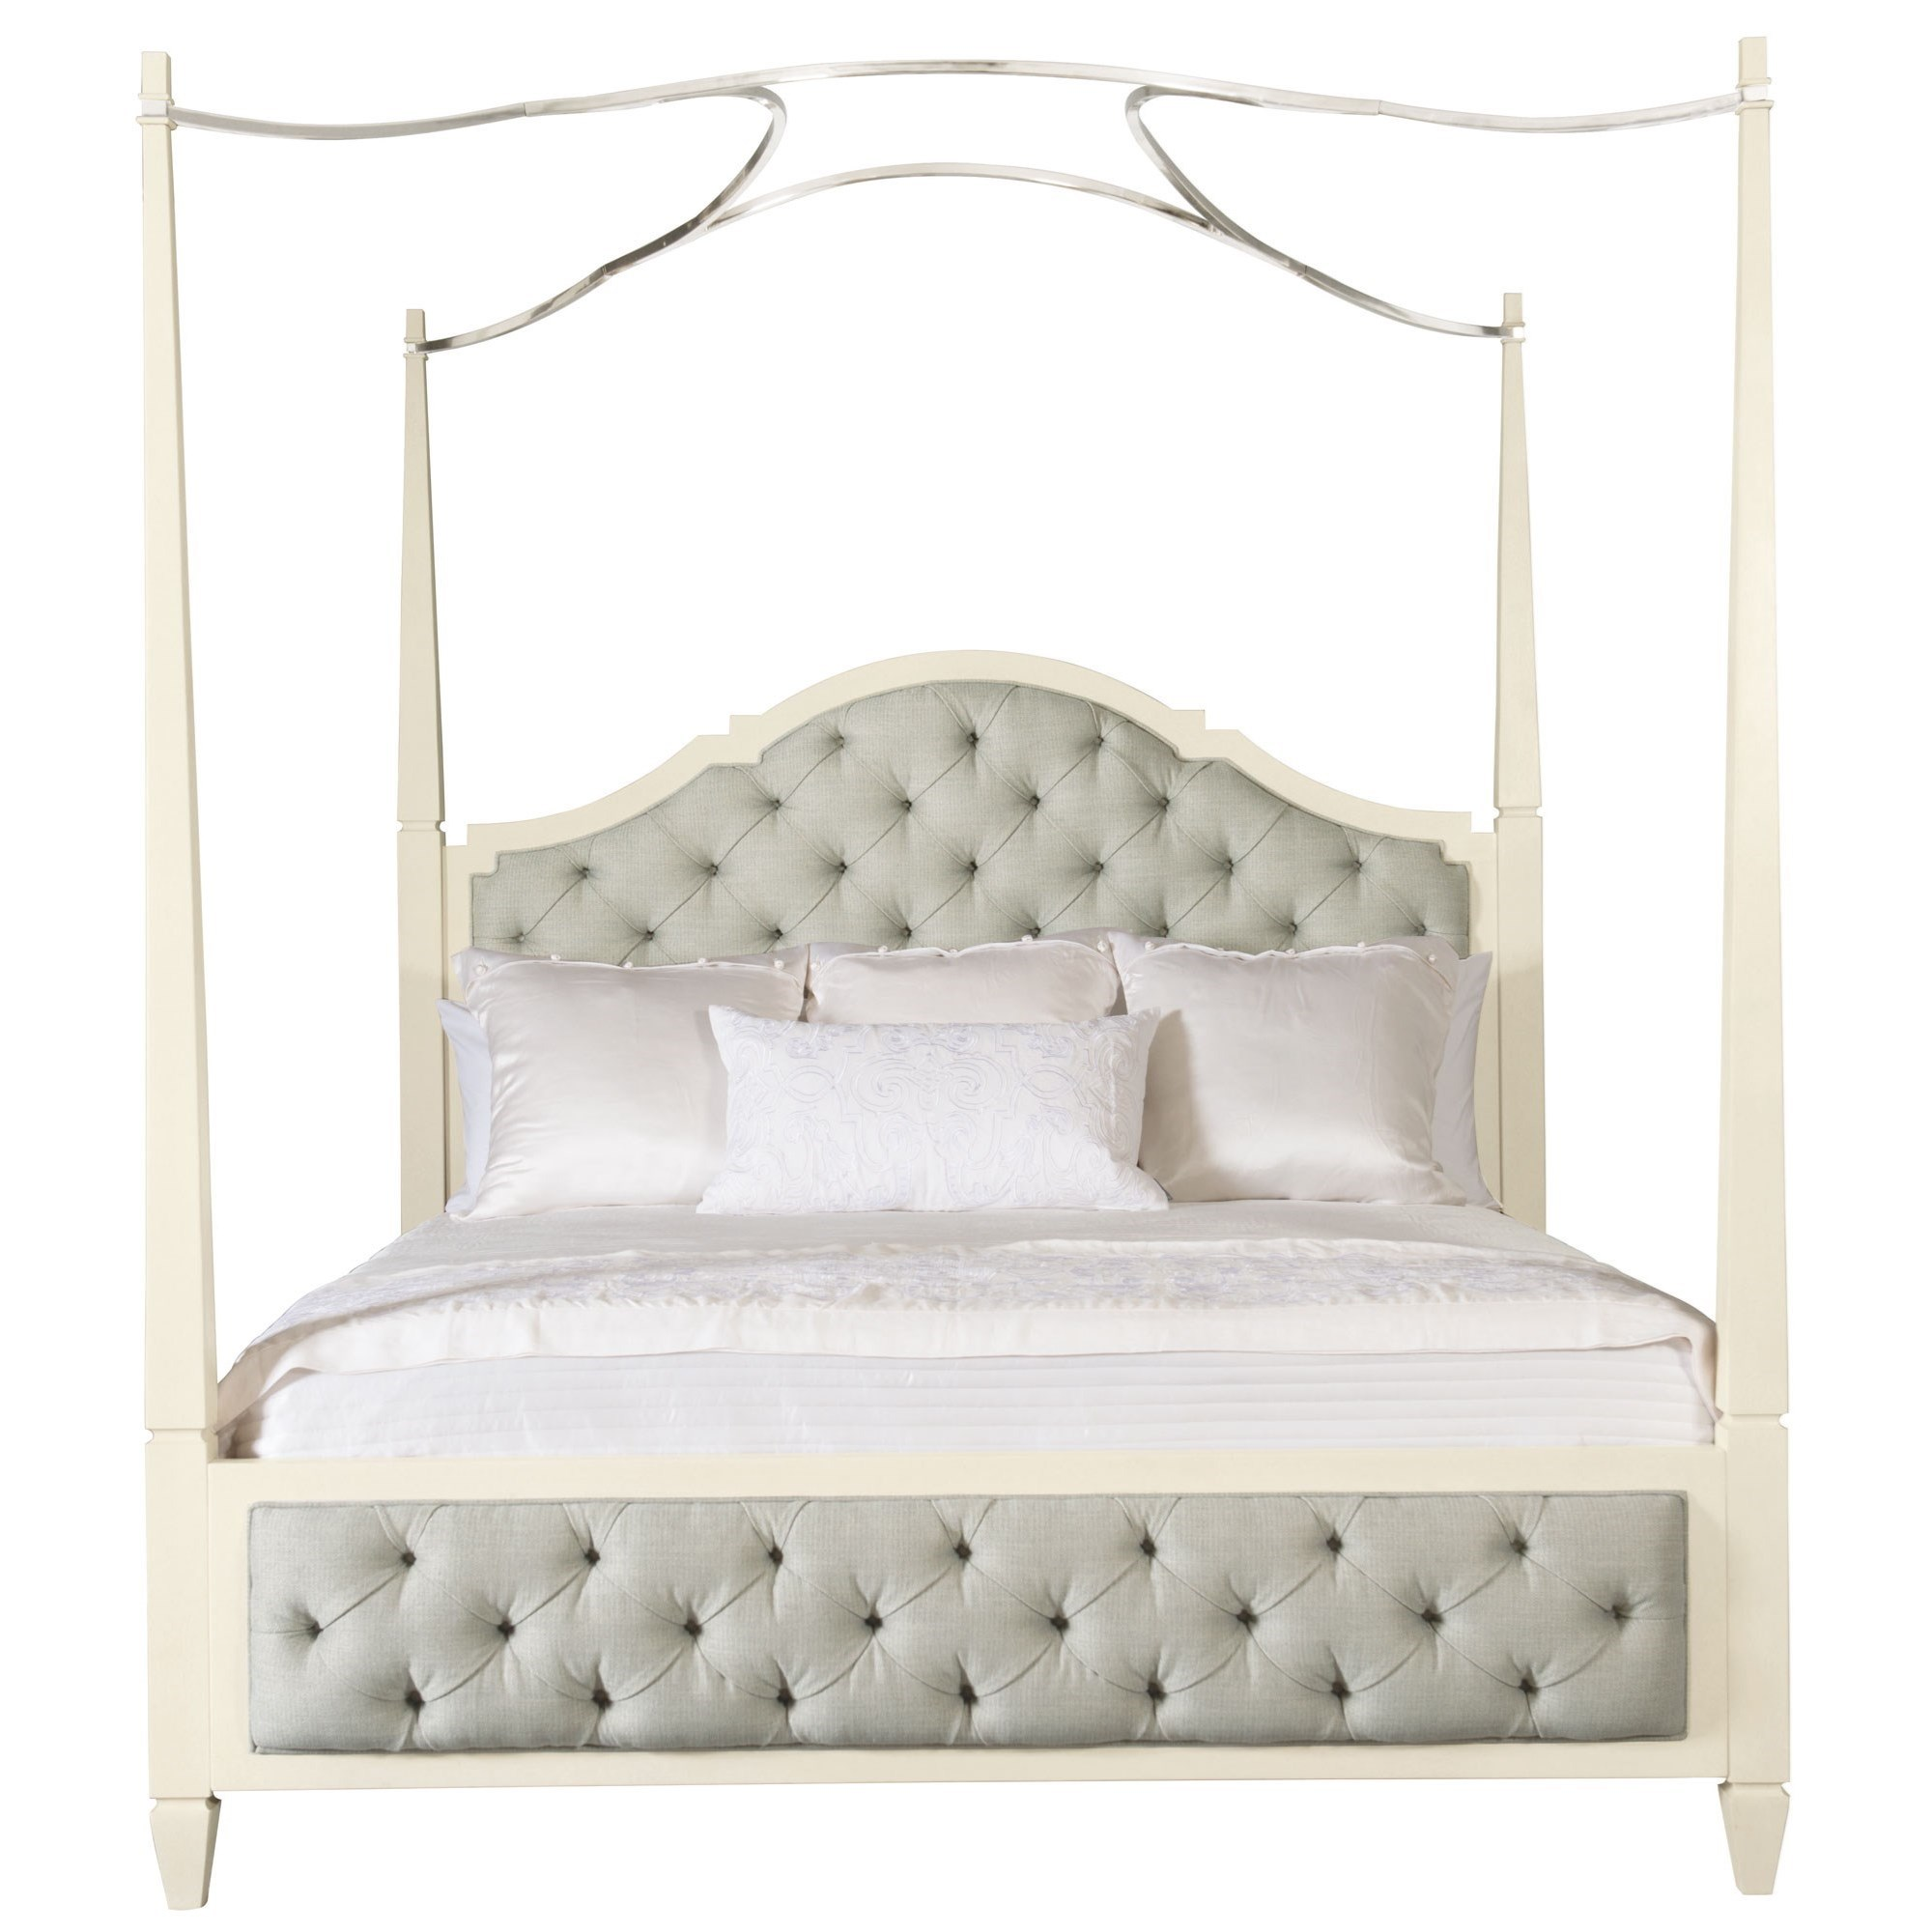 Bernhardt Savoy Place Queen Upholstered Poster Bed - Item Number: 371-H57A+F57A+R57A+527